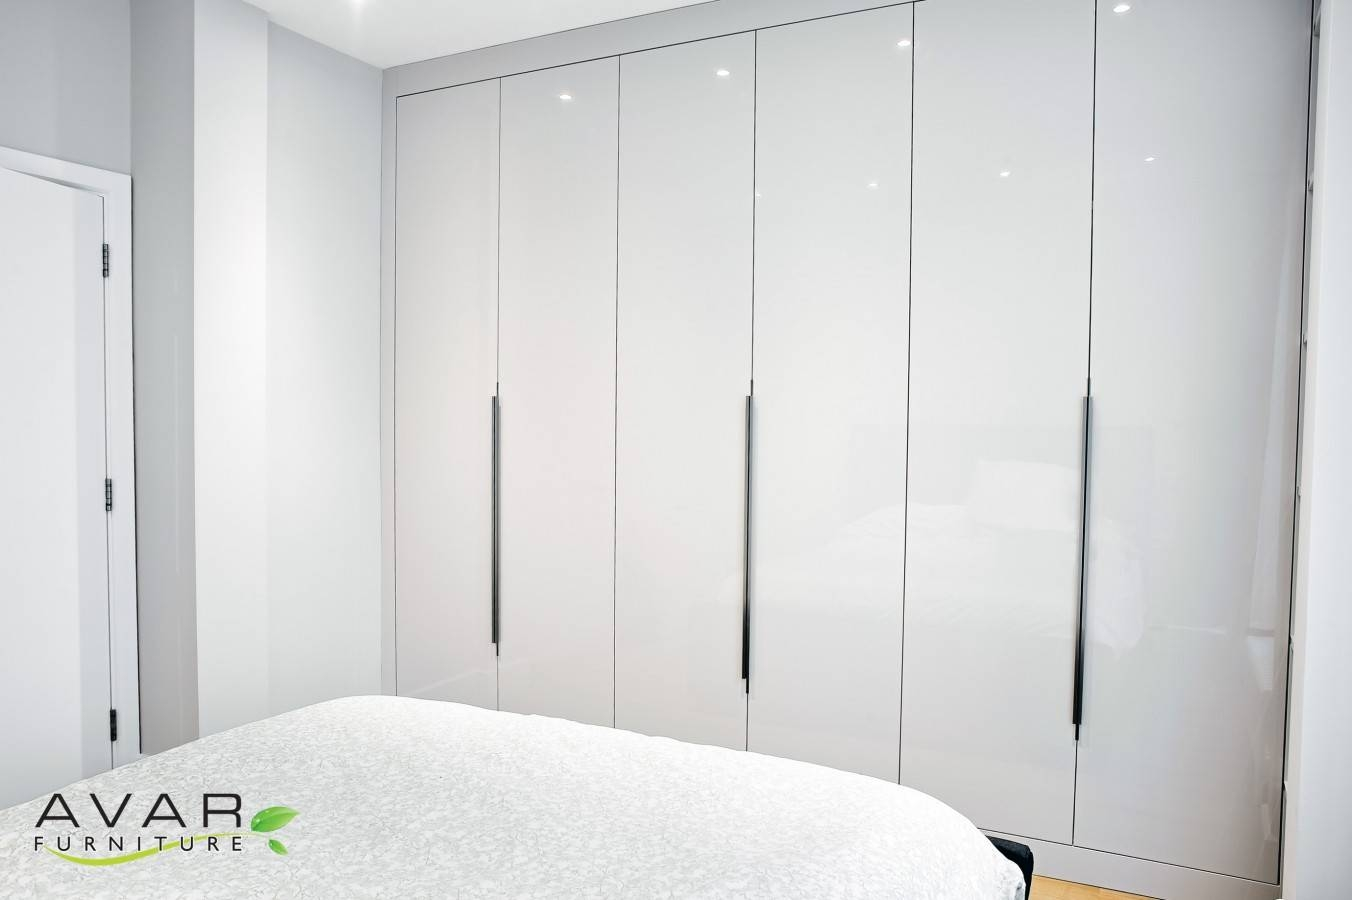 Ƹӝʒ Fitted Wardrobe Ideas Gallery 19 | North London, Uk | Avar pertaining to High Gloss Black Wardrobes (Image 15 of 15)